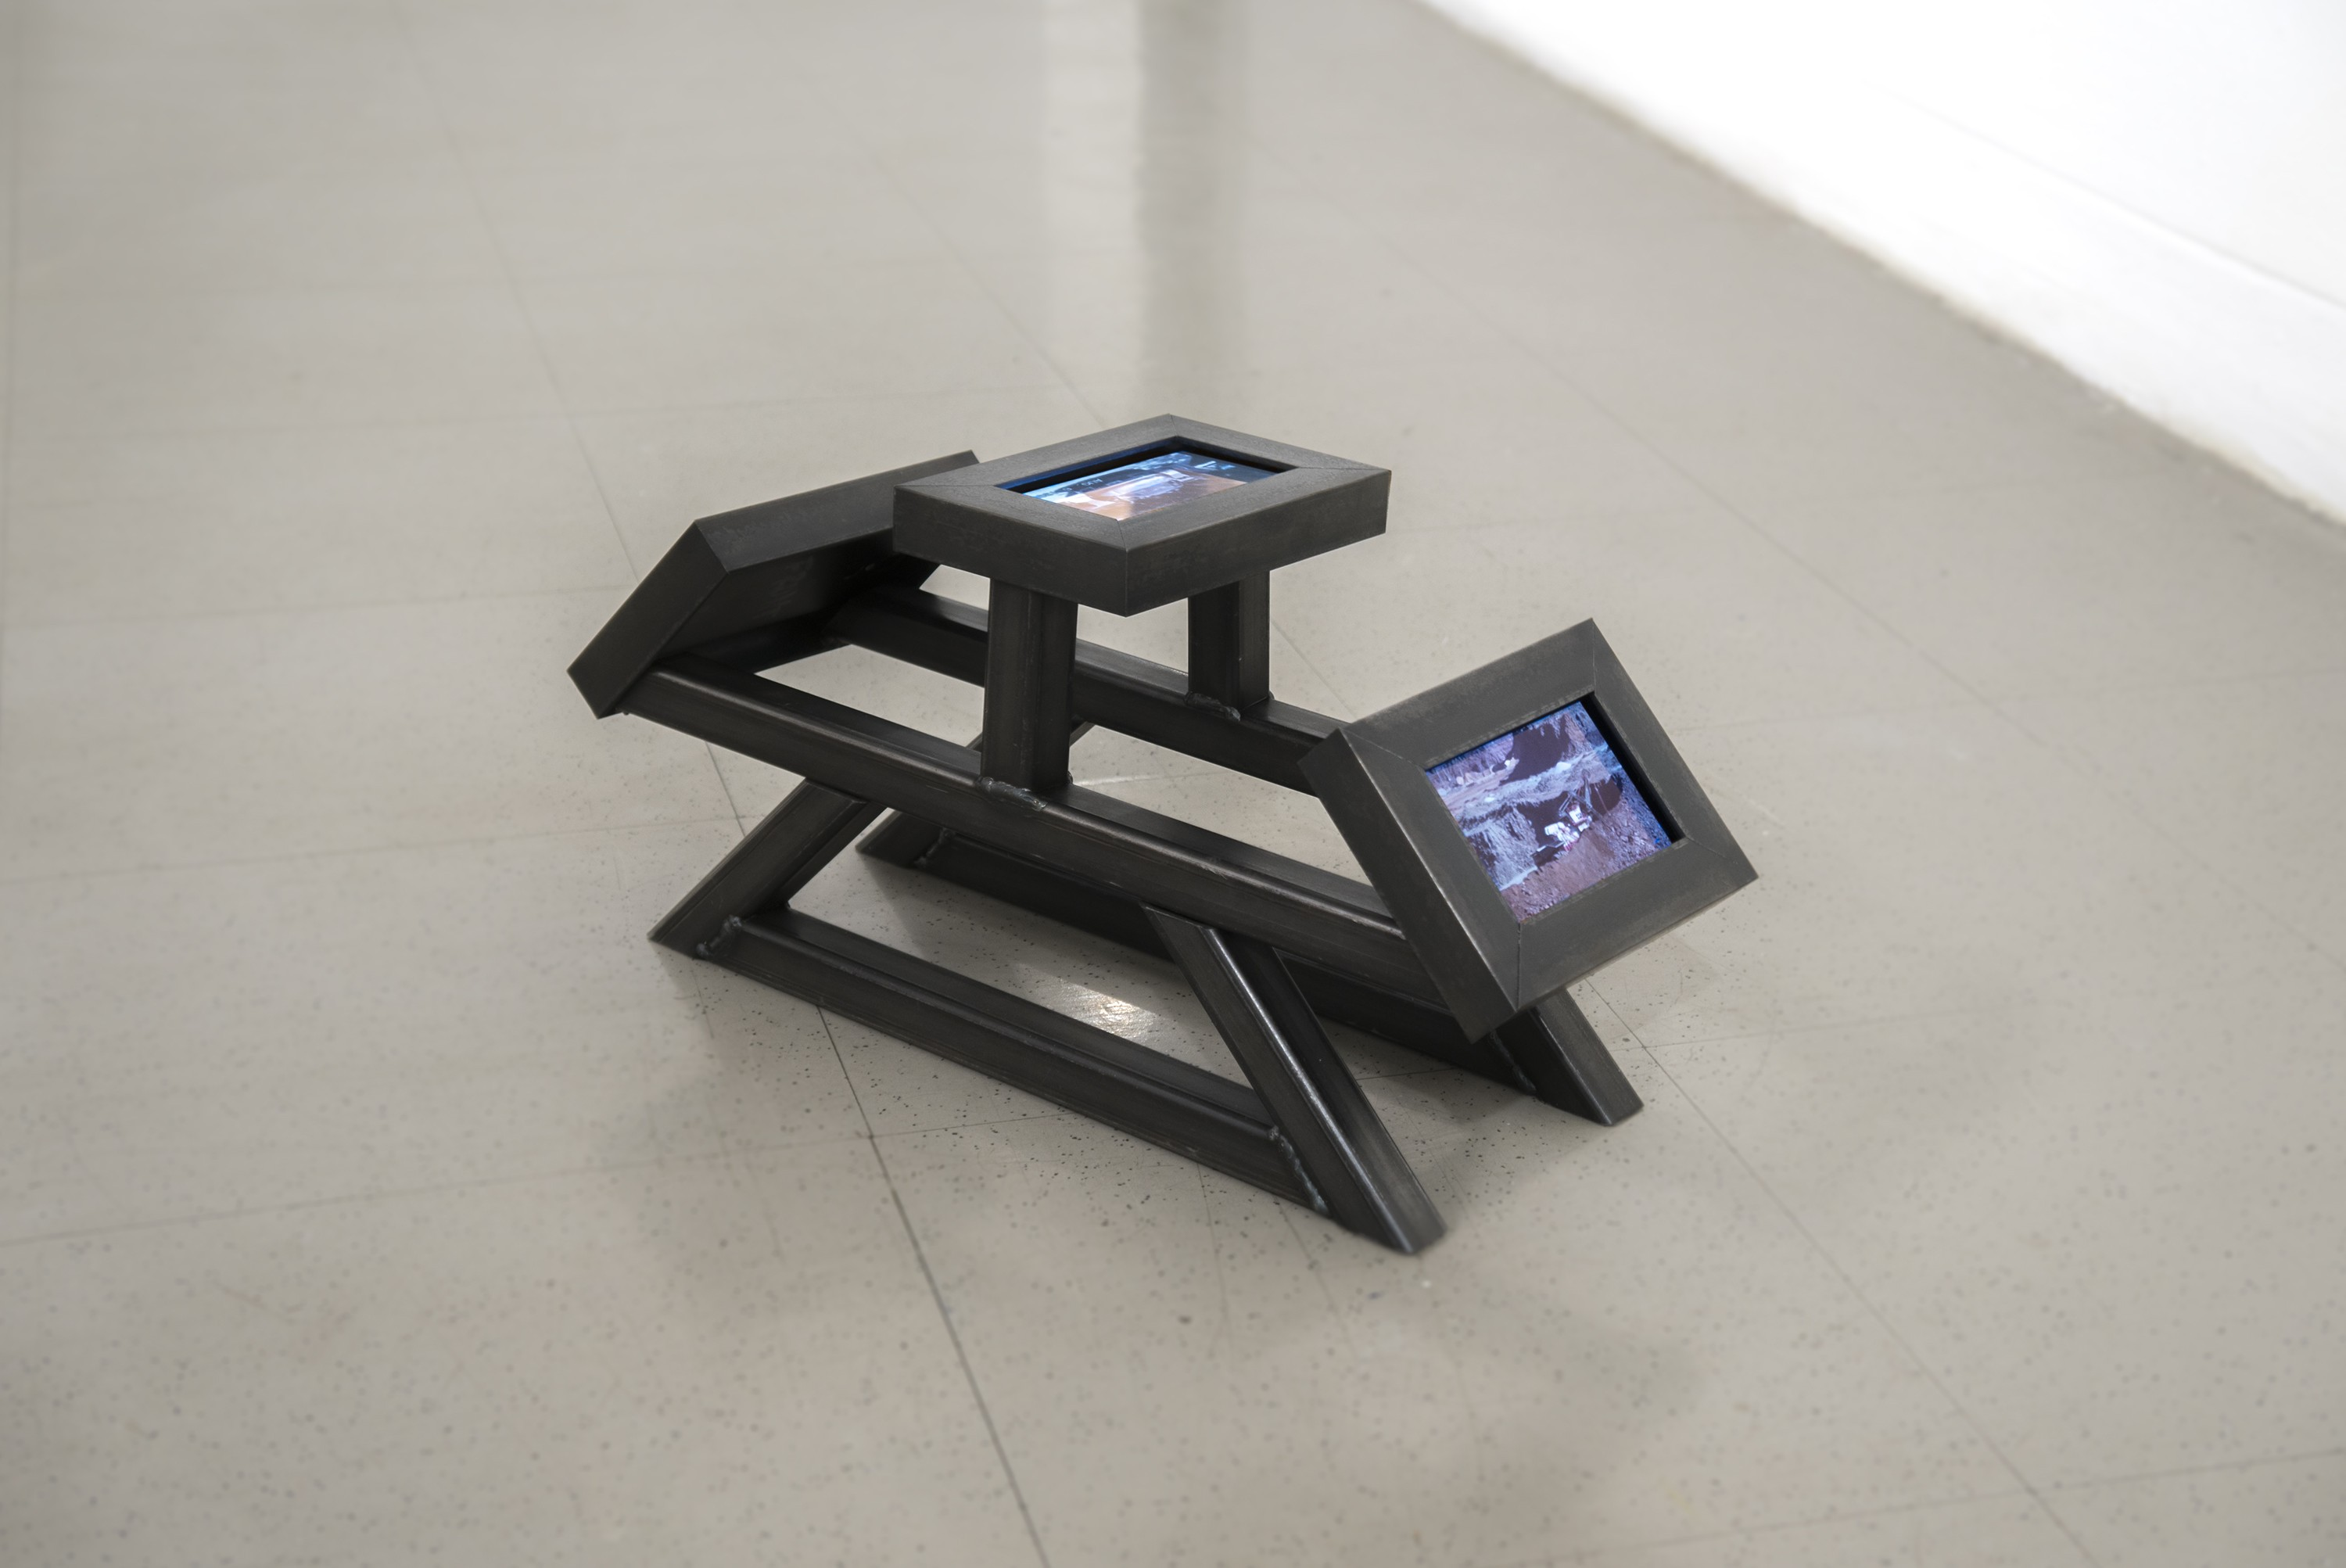 A floor sculpture consisting of a steel frame modeled after a car chassis holding three small screens. One screen faces forward, another up, and another backward. One plays a video of cars being scrapped, another plays a home movie of someone showing fri